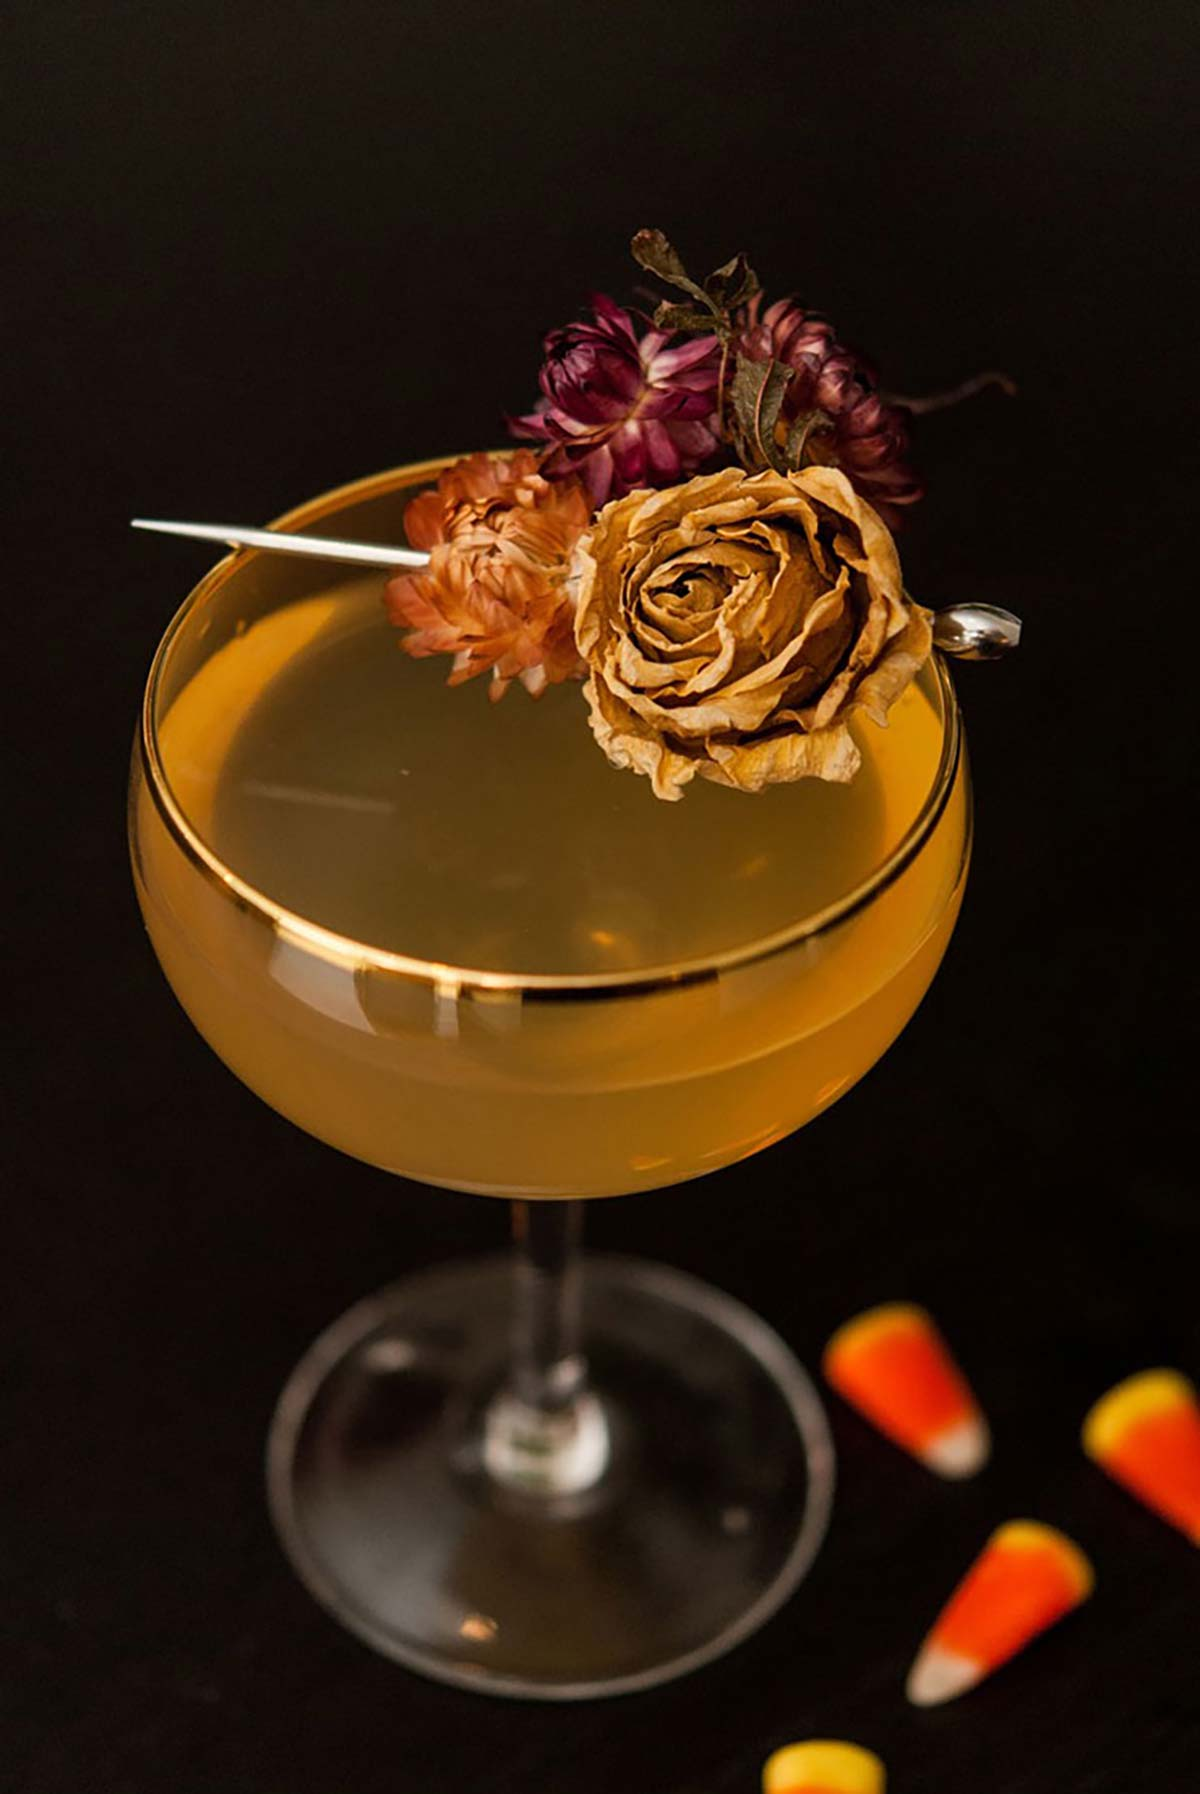 A cocktail garnished with dry flowers on a black table sprinkled with 3 candy corns.